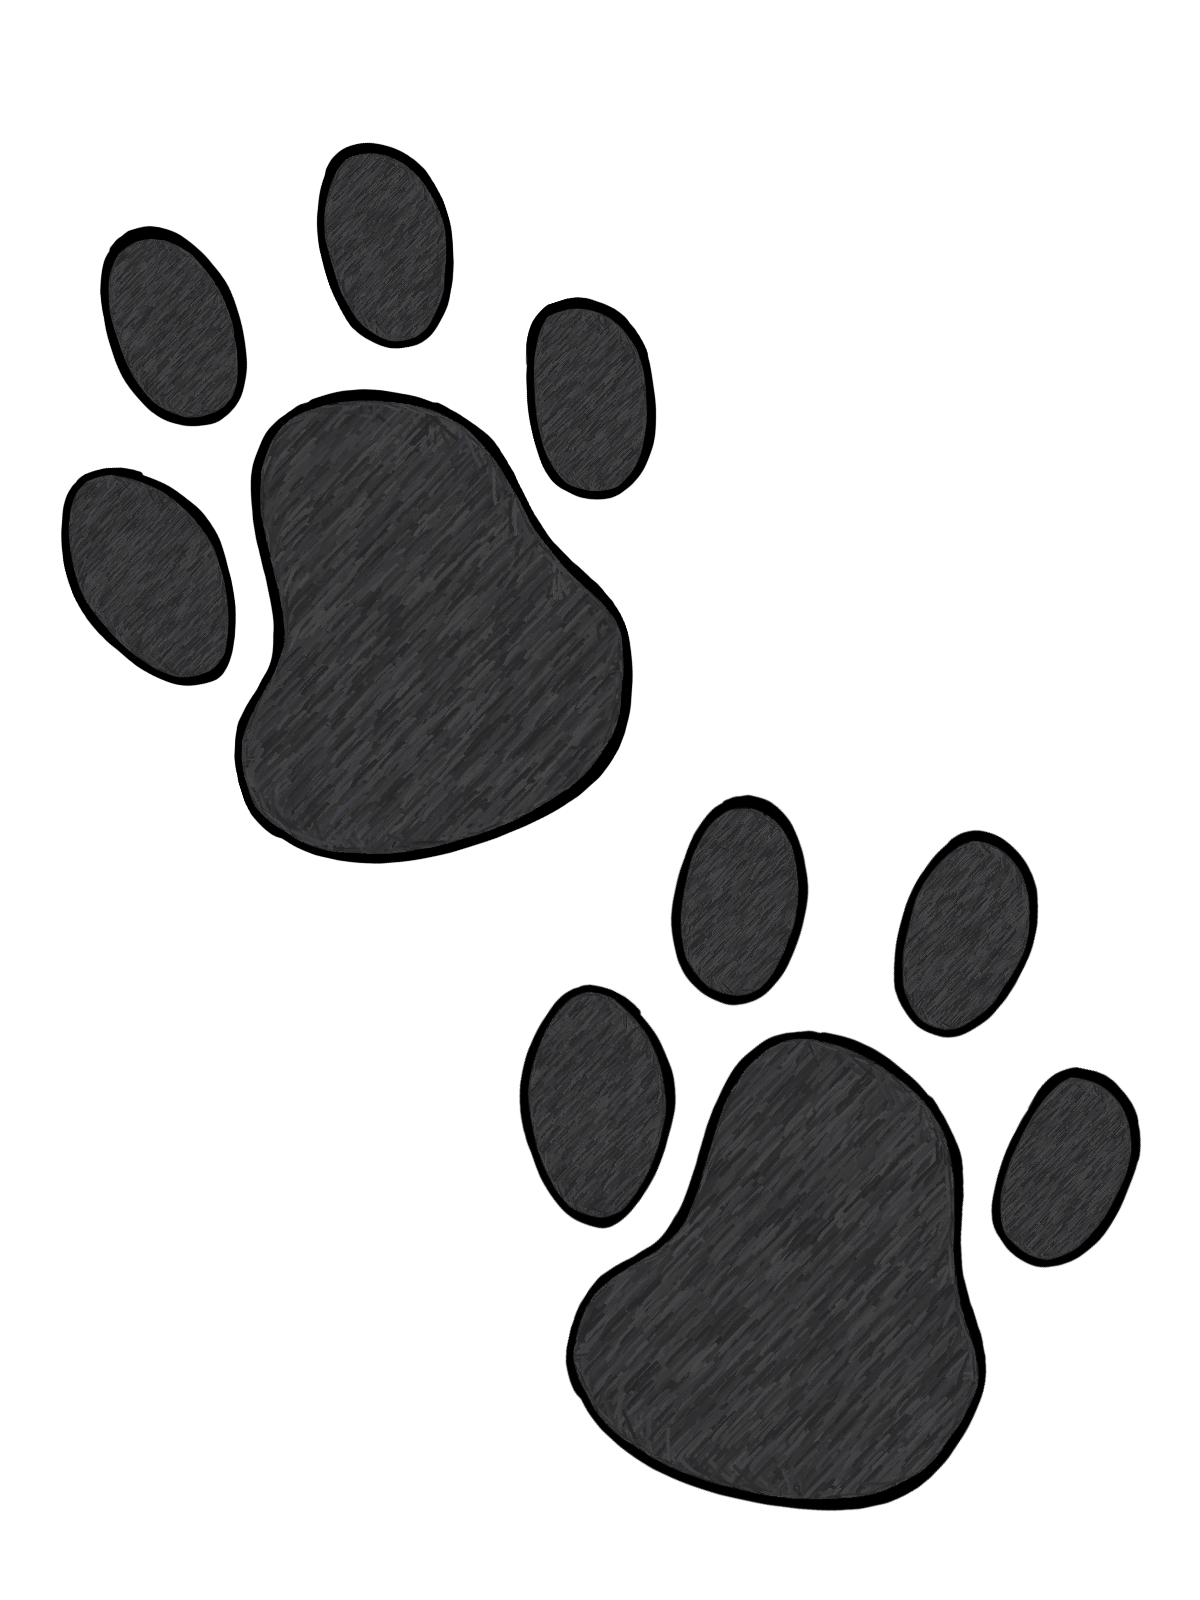 Free scroll heart clipart clip art black and white Paw print tattoos on dog paw prints scroll clipart 3 4 - WikiClipArt clip art black and white